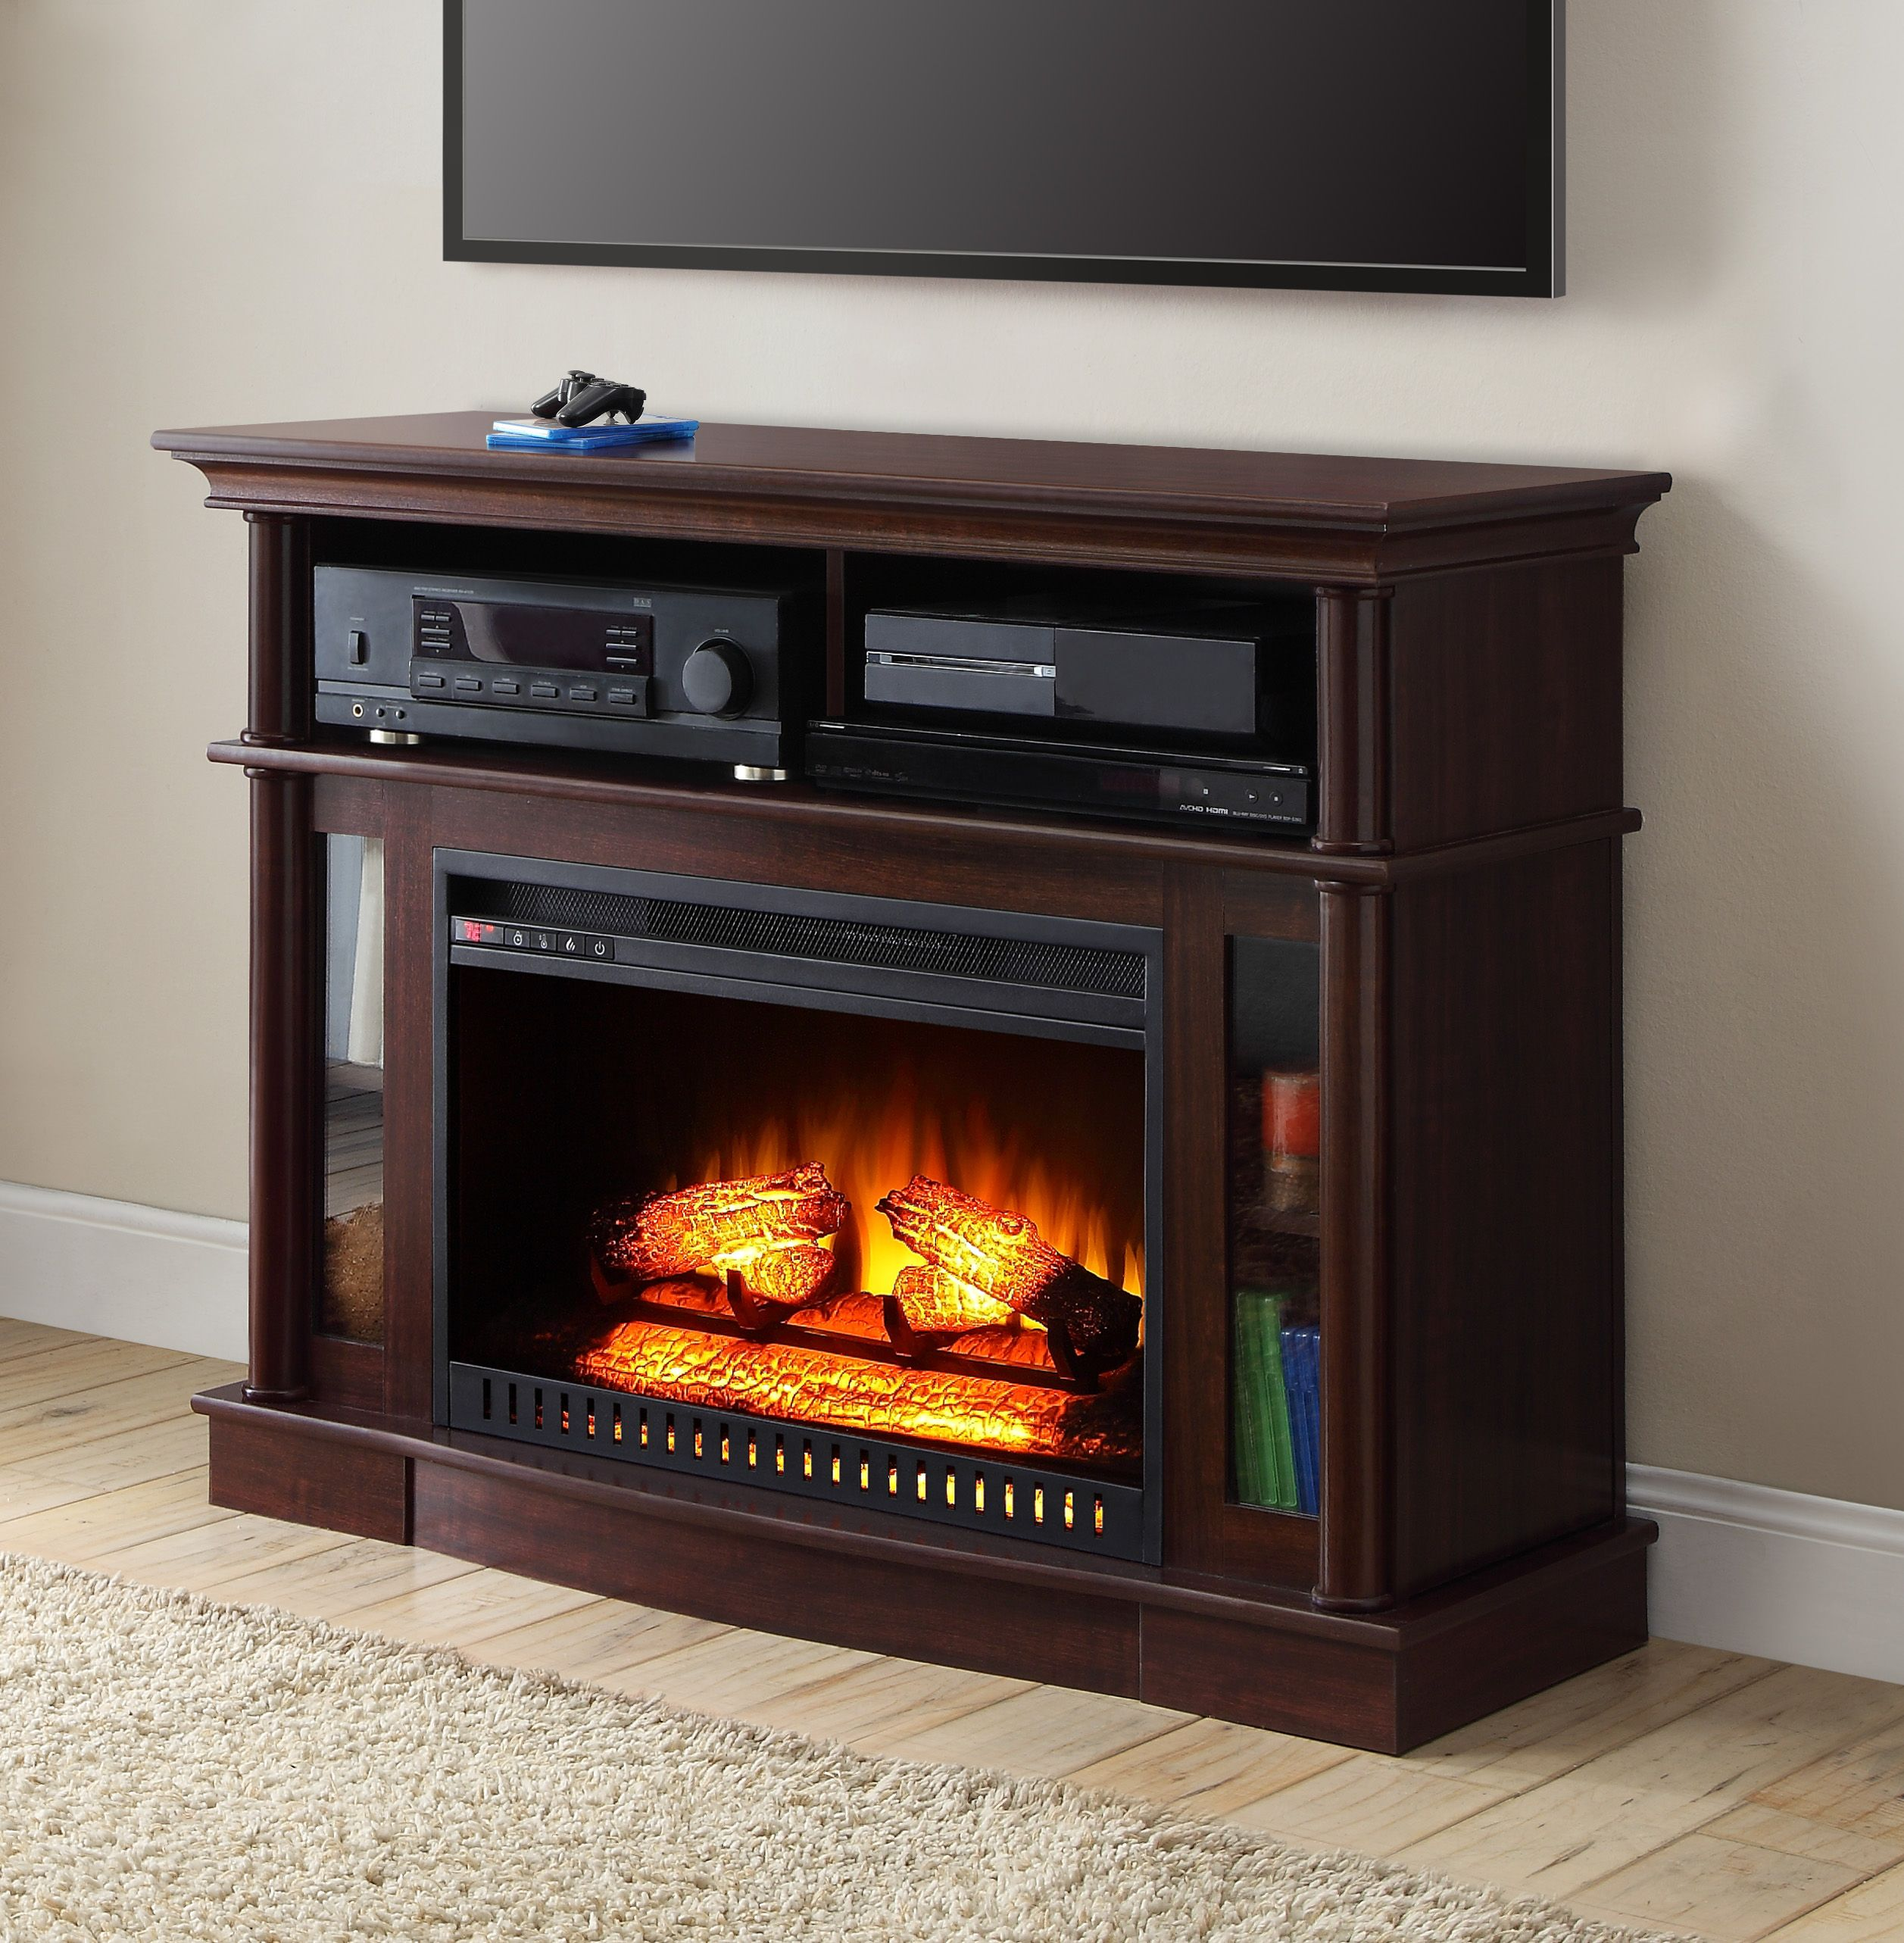 Better homes and gardens ashwood road media electric fireplace for better homes and gardens ashwood road media electric fireplace for tvs up to 45 teraionfo